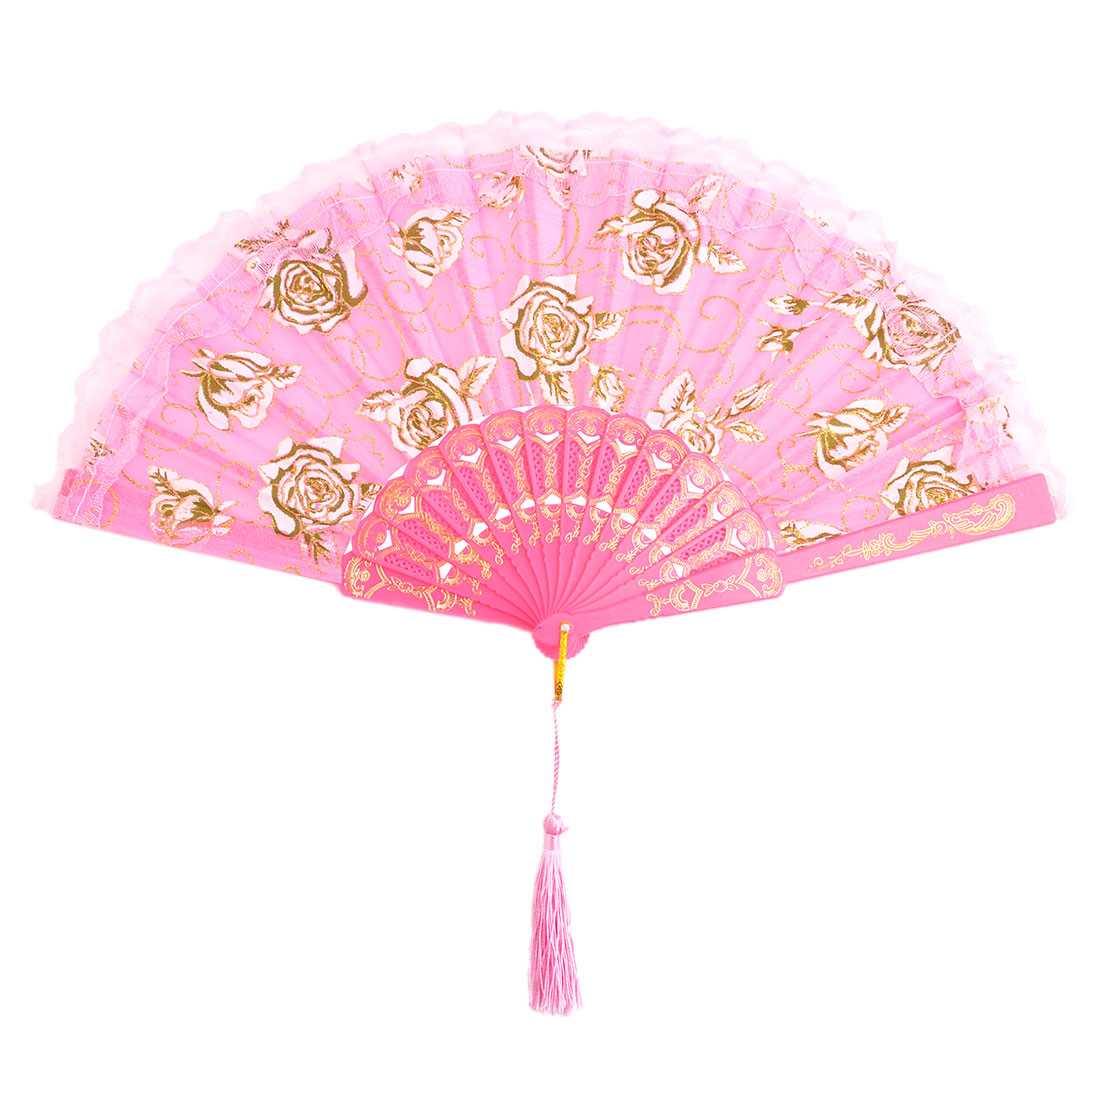 Household Party Plastic Frame Floral Pattern Folding Dancing Cooling Hand Fan Pink